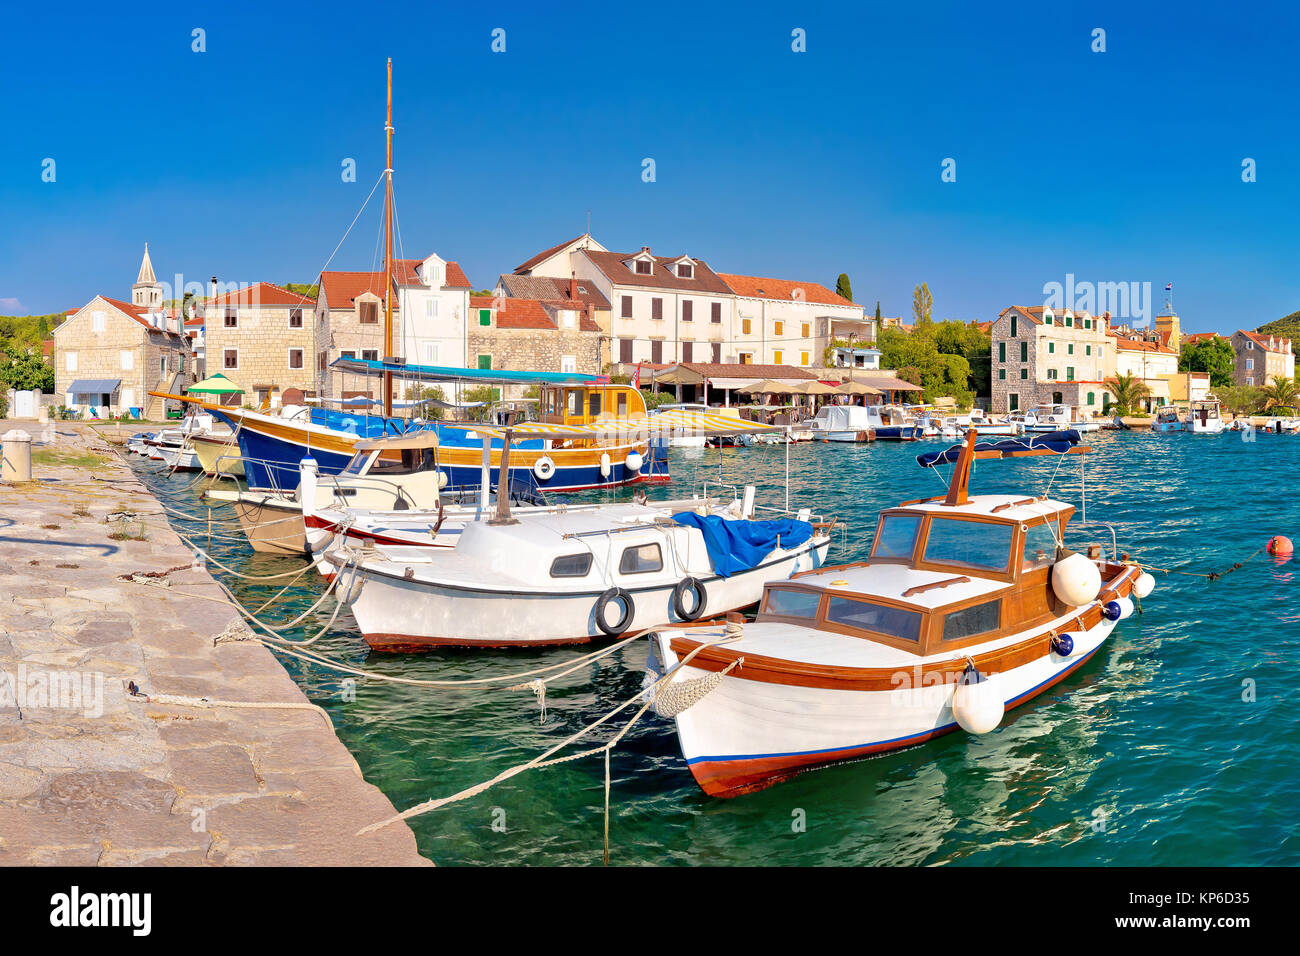 Island of Zlarin harbor panoramic view, Sibenk archipelago of Croatia - Stock Image